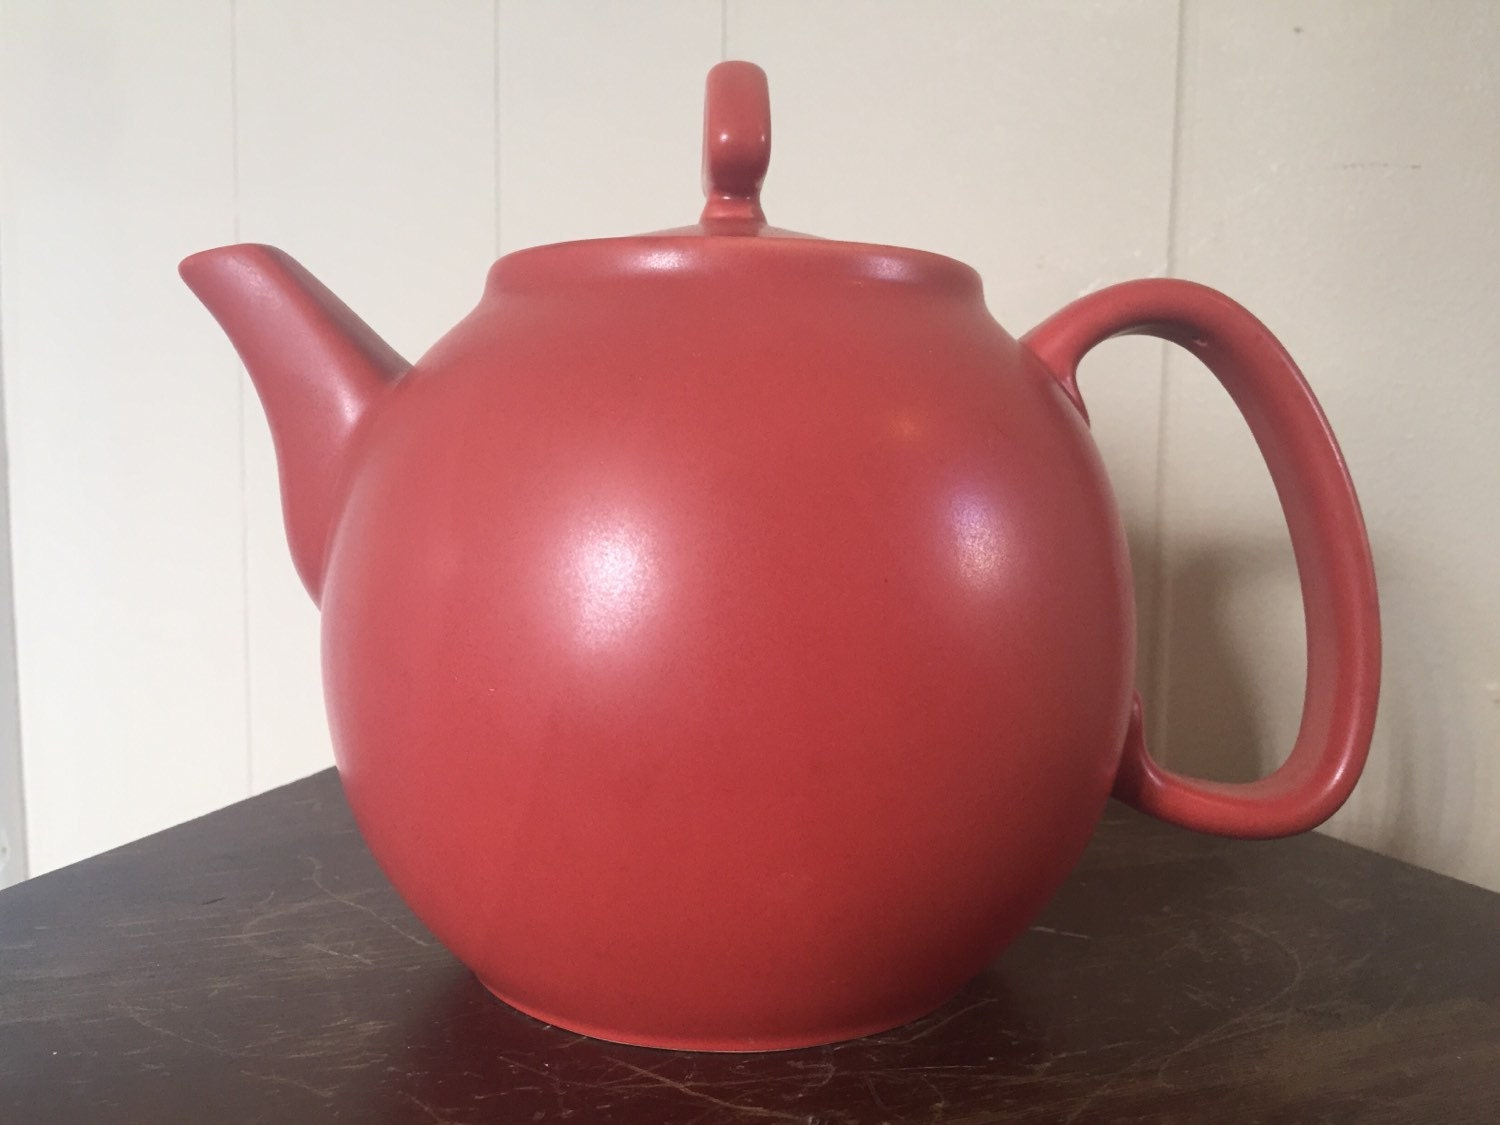 Chantal teapot red chantal teapot red teapot vintage by speckadoos - Chantal teapots ...